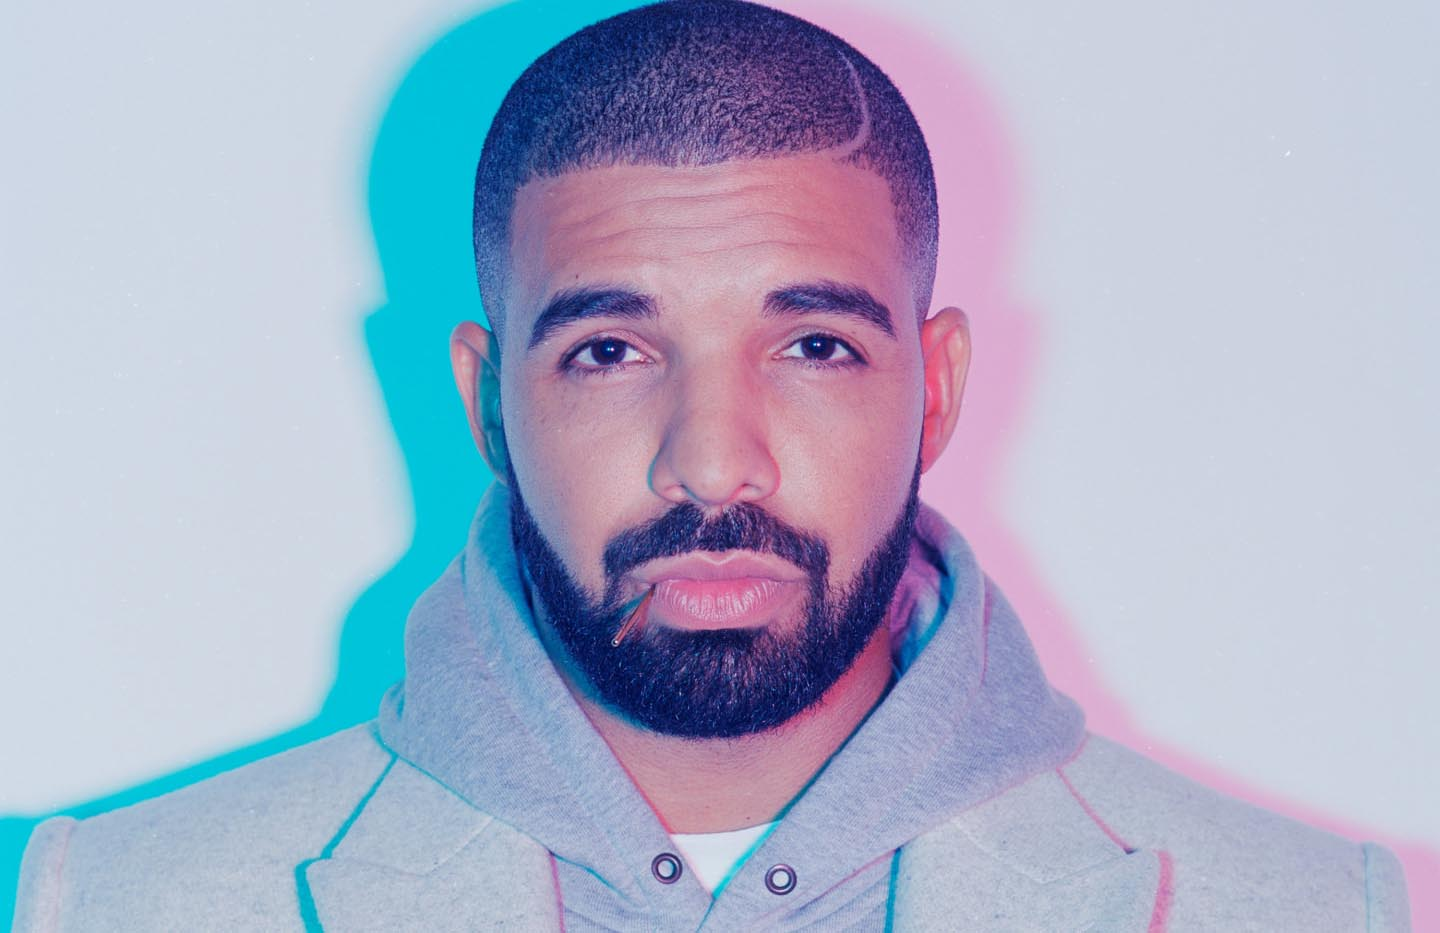 Drake reps Gen Y with emotional complexity